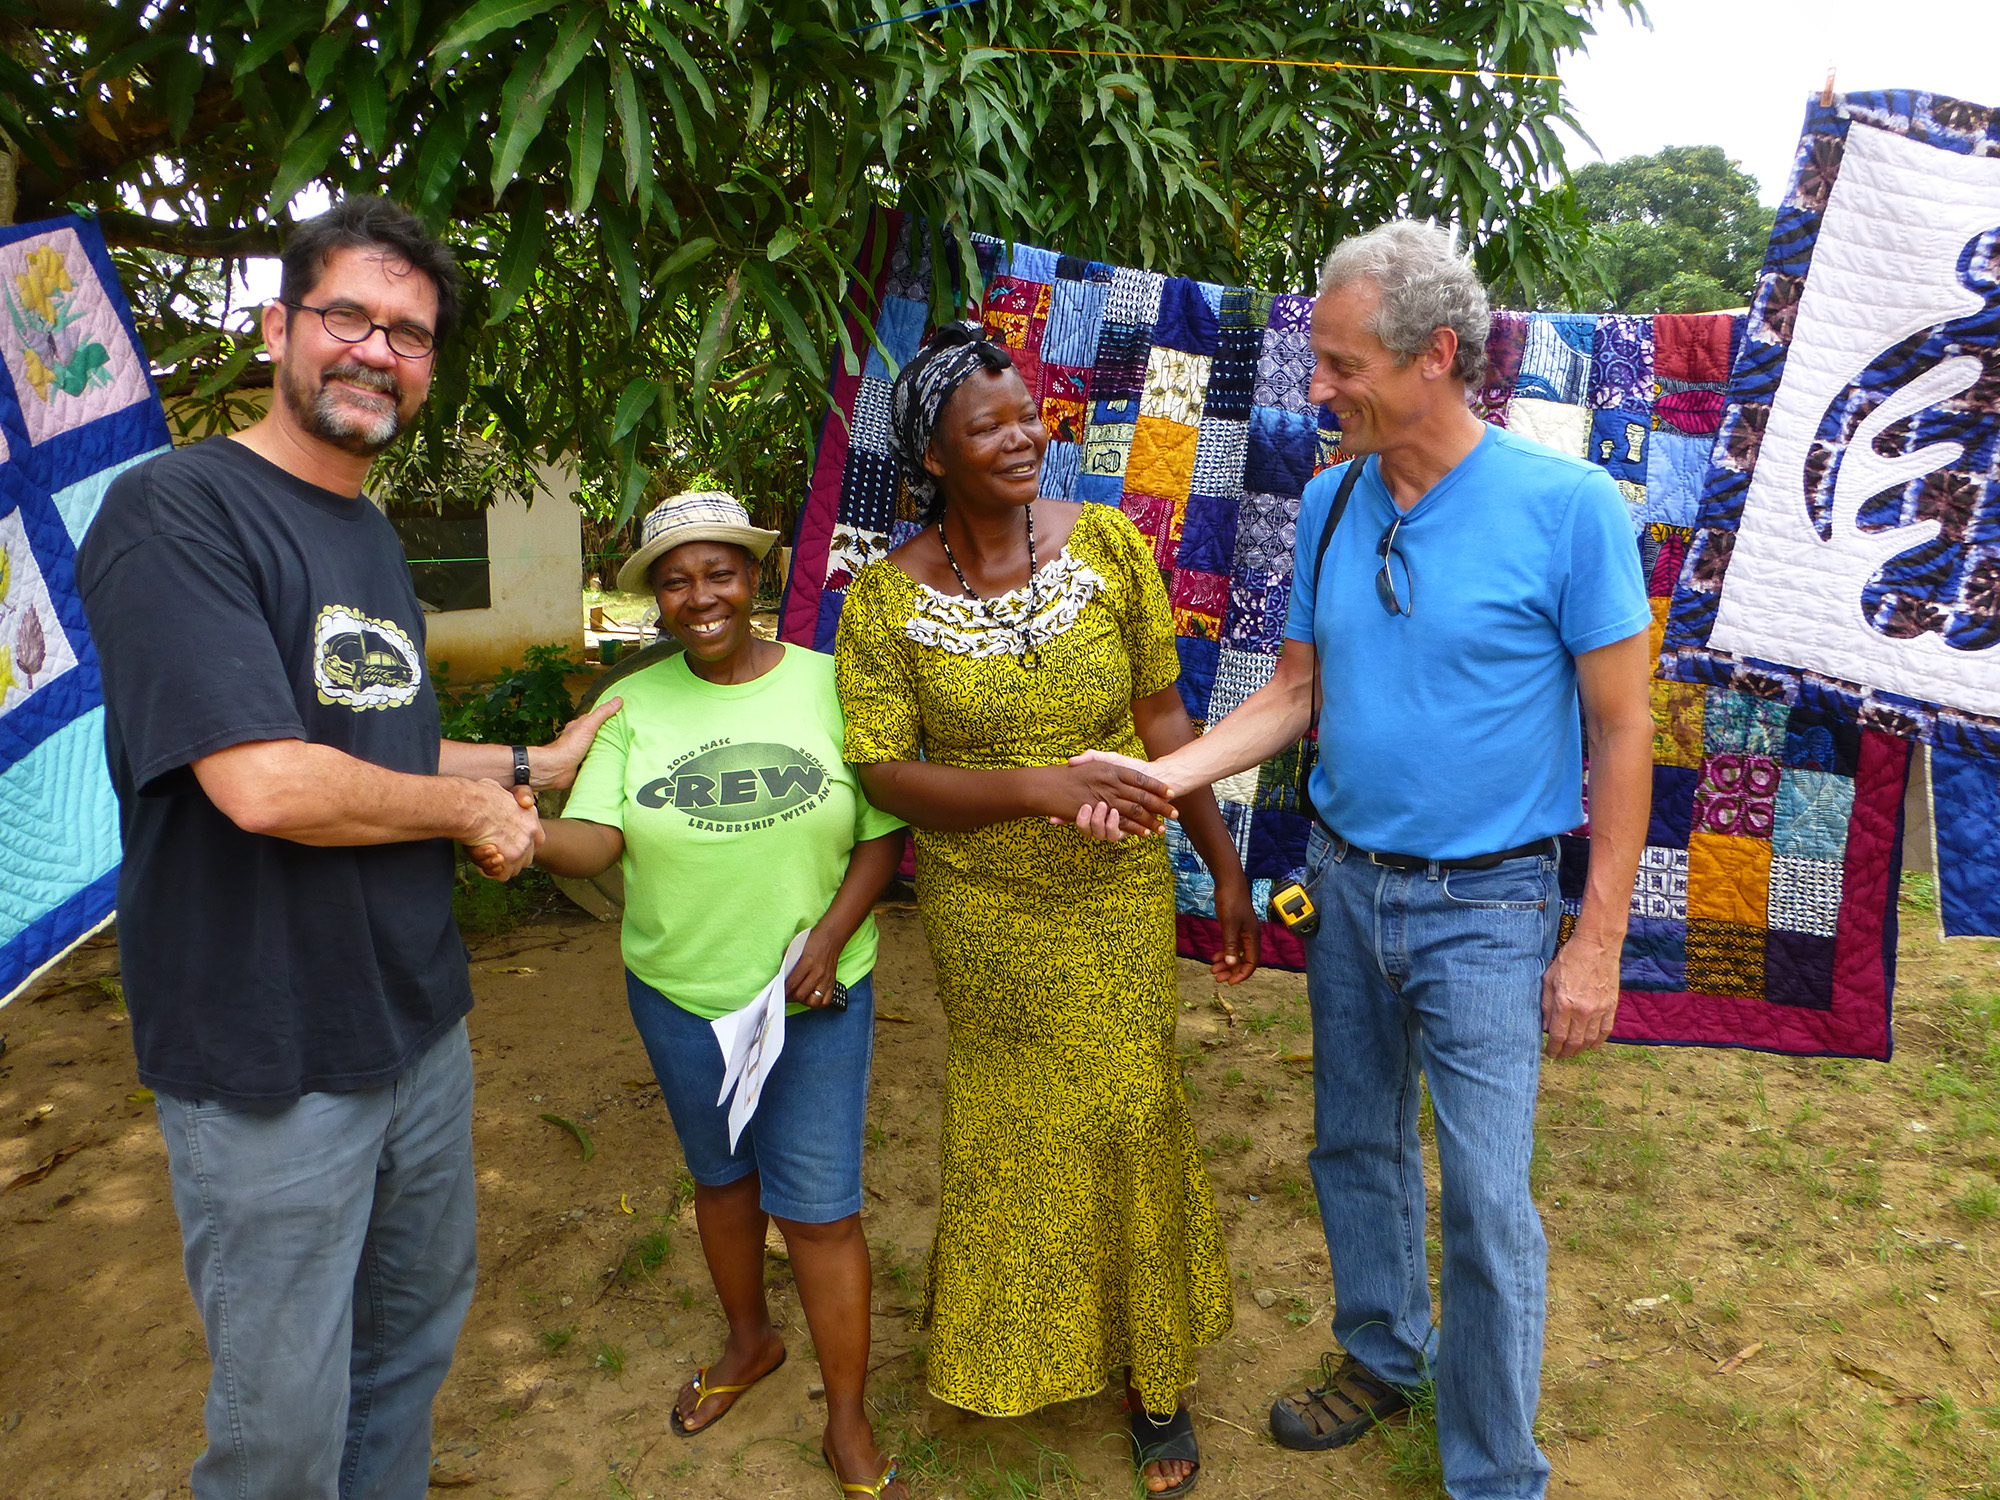 Working Man collective members Tom Ashcraft and Peter Winant with Alice and Maud and their quilts